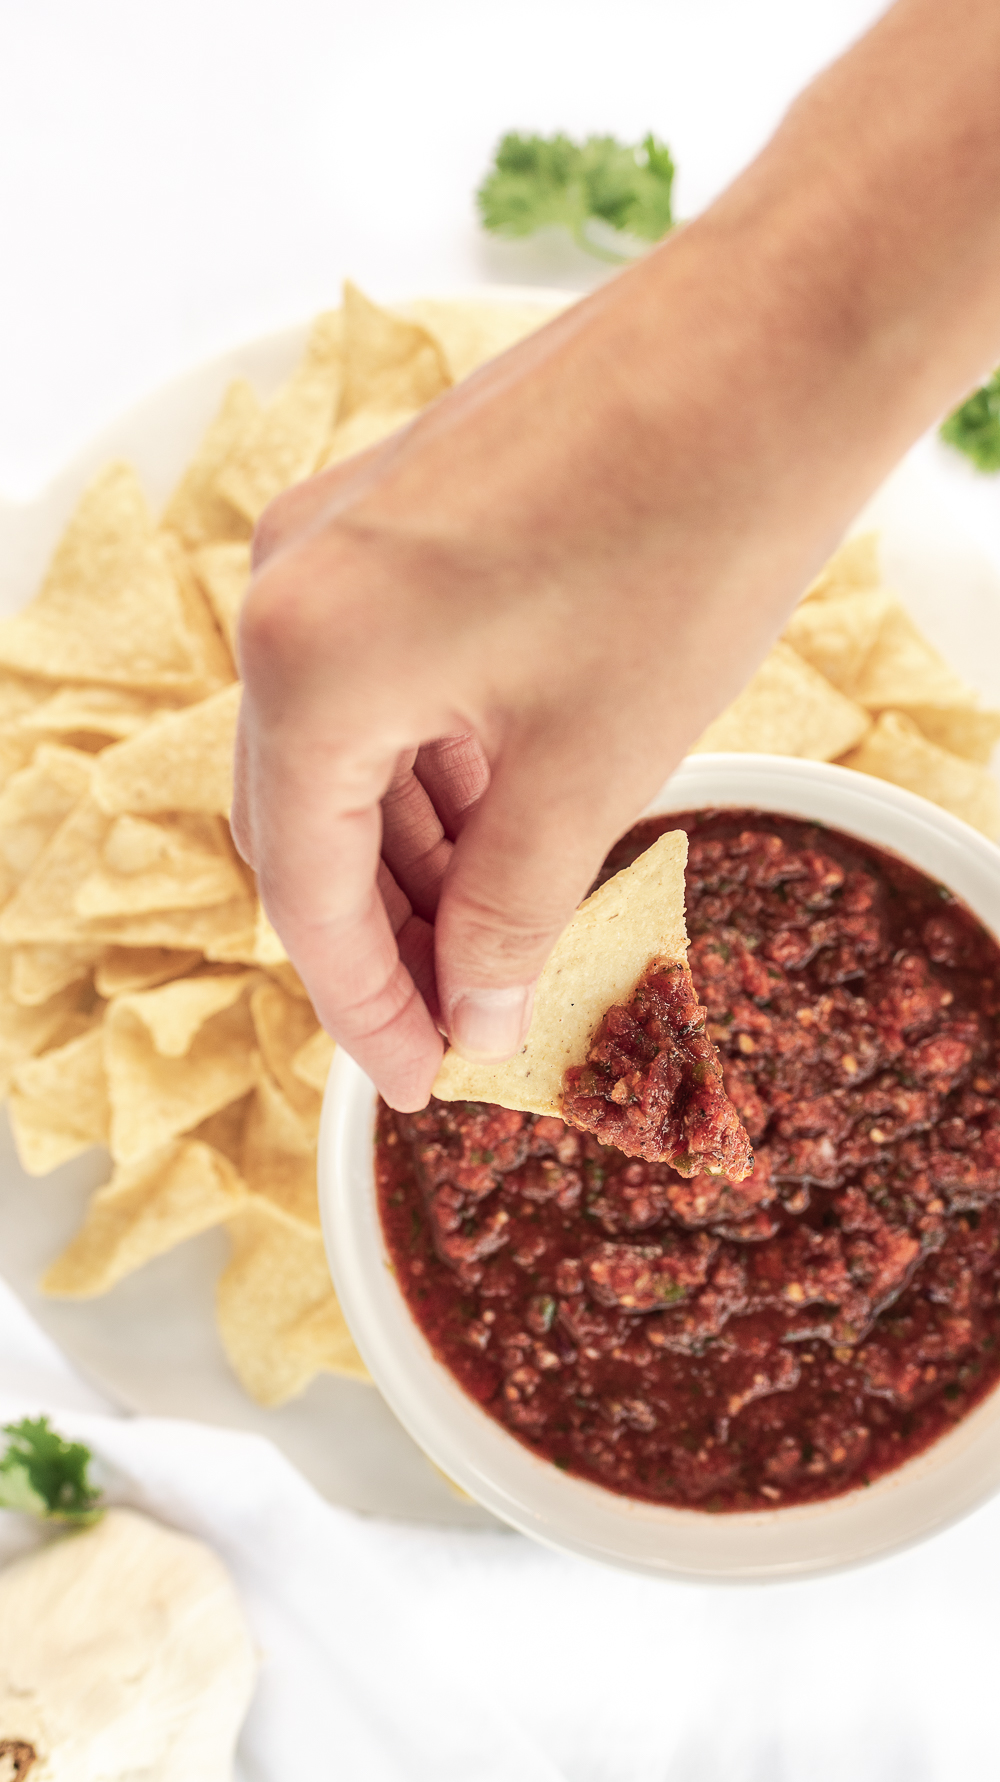 dip tortilla chip into fresh homemade salsa with Roma tomatoes